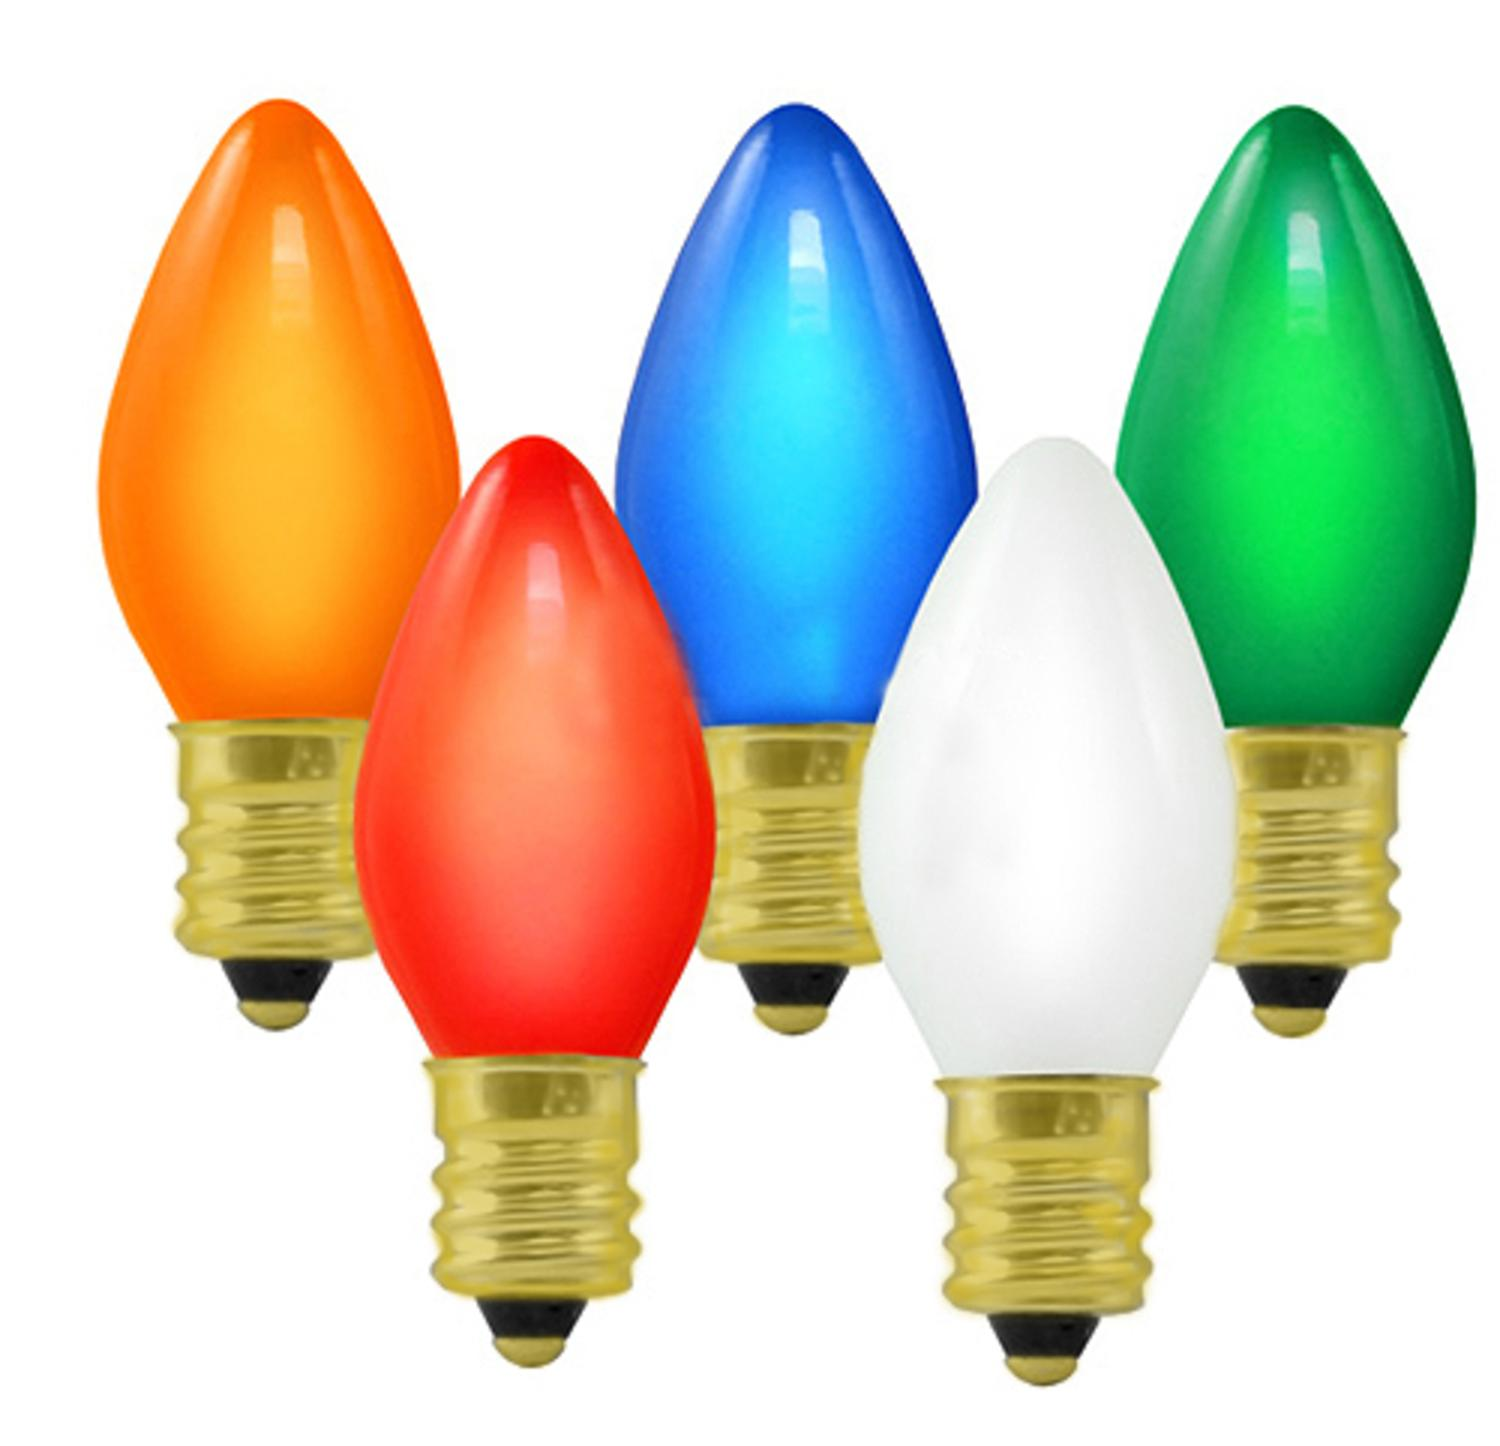 Club Pack of 100 C7 Ceramic Multi-Color Replacement Christmas Light Bulbs